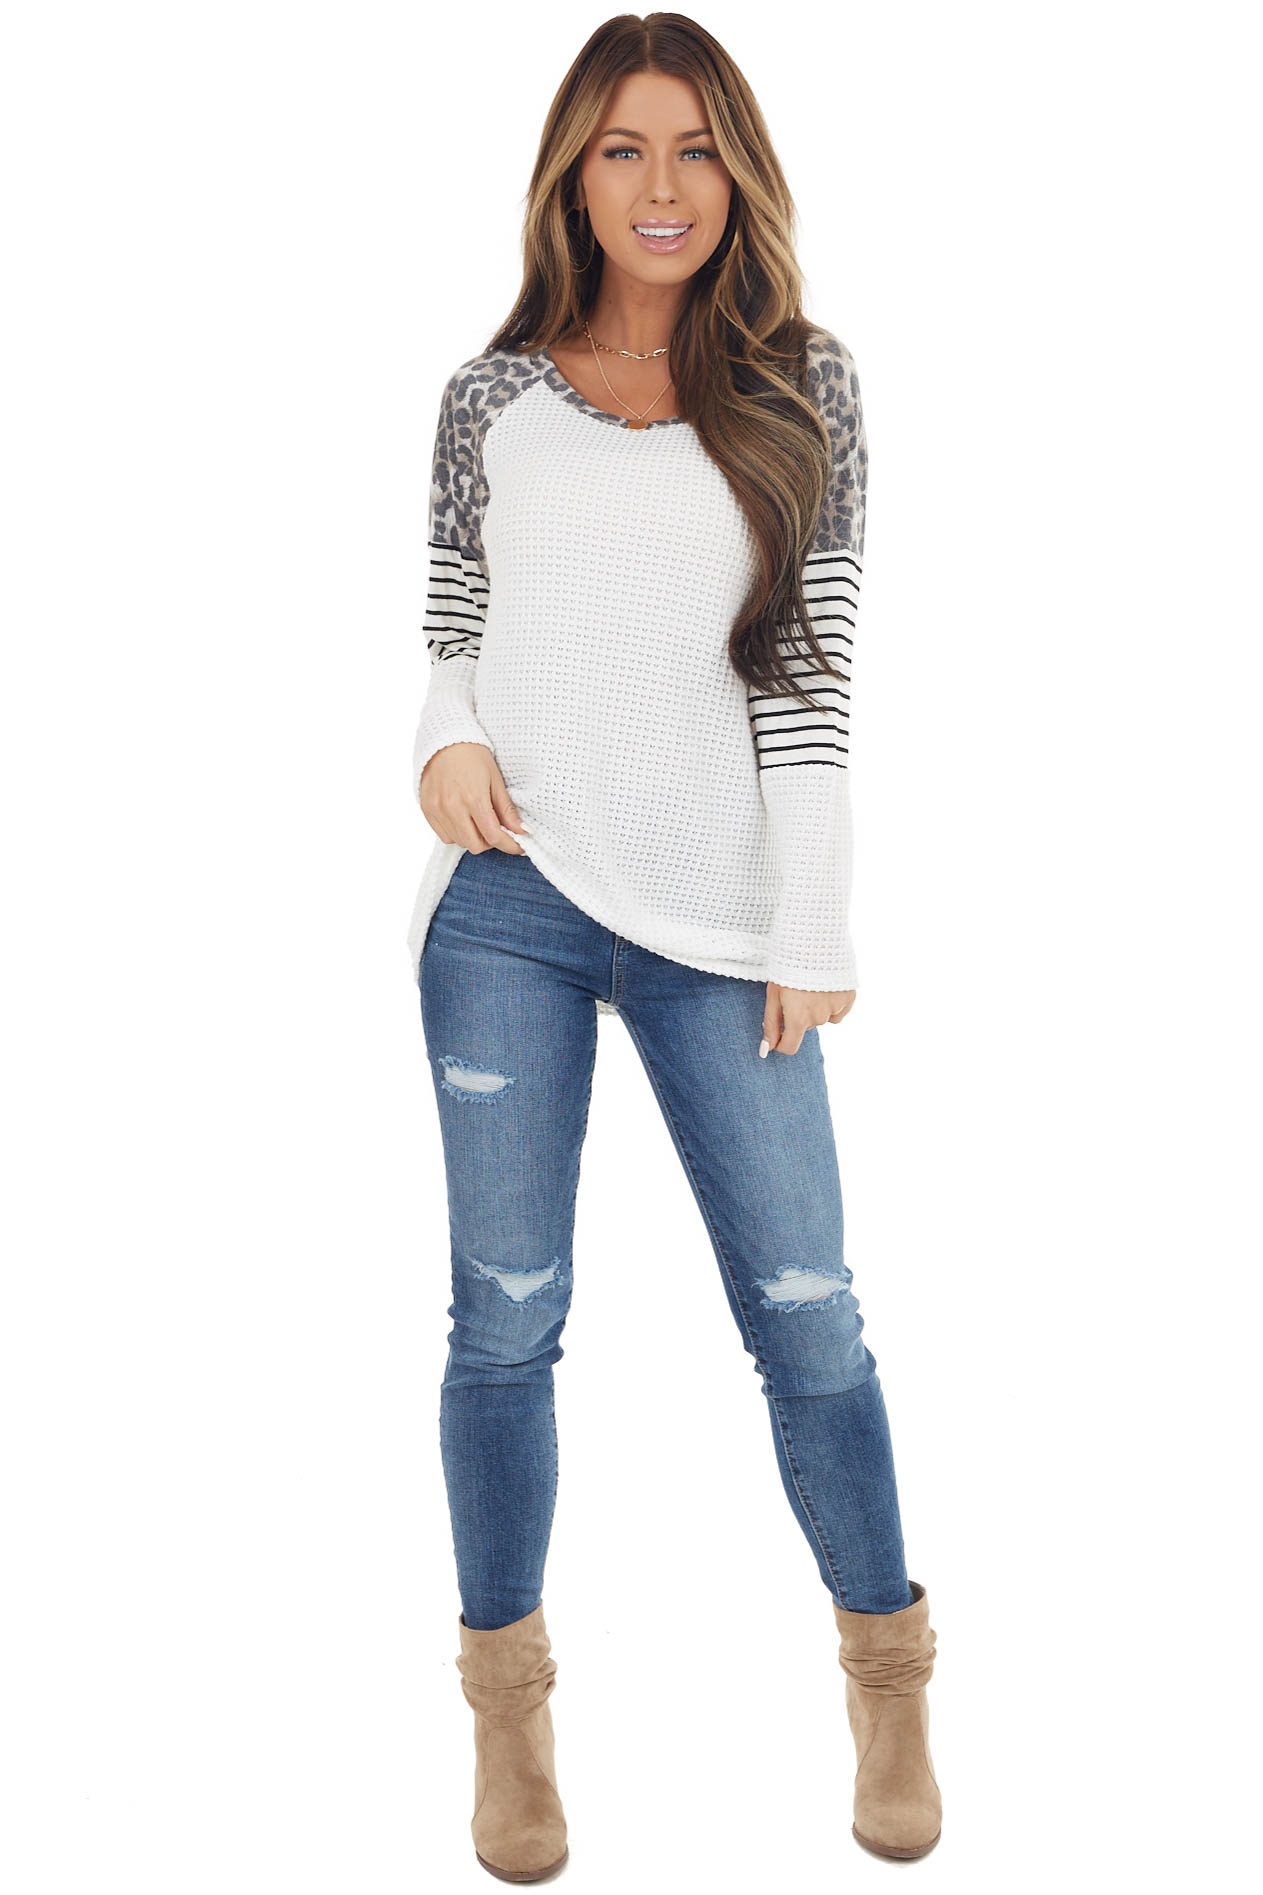 White Waffle Knit Top with Striped and Leopard Print Contrast